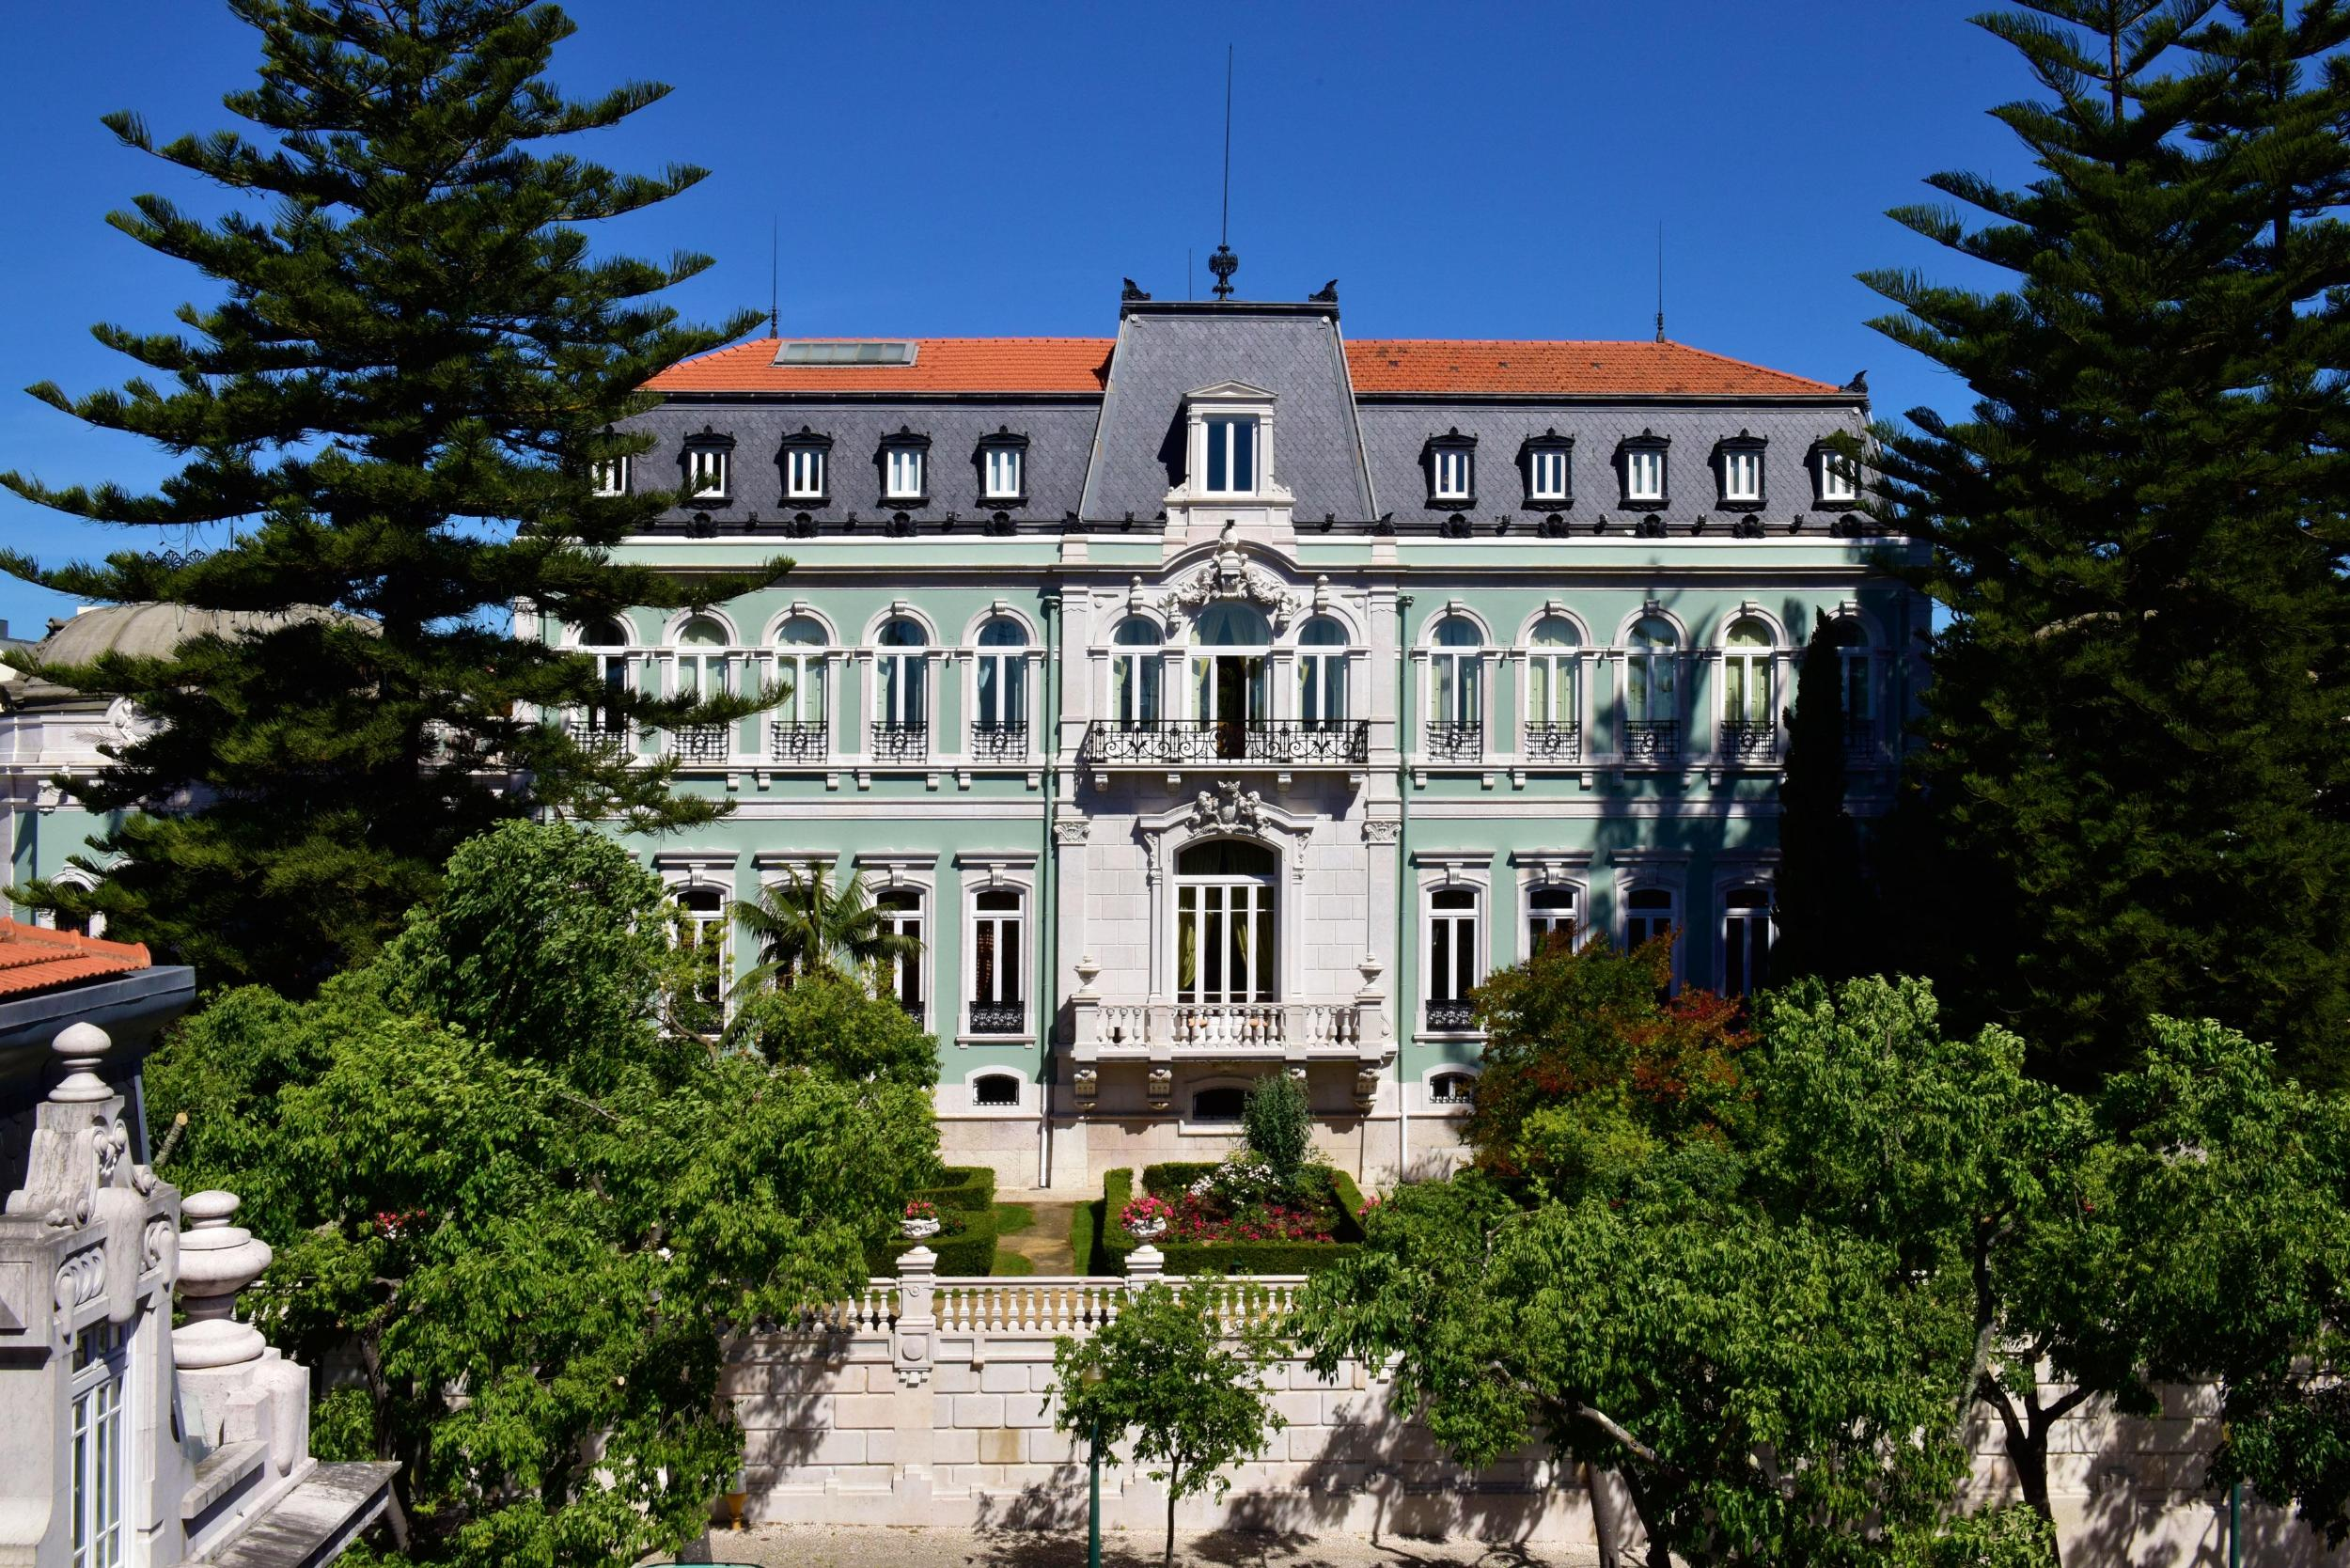 Pestana Palace Hotel and National Monument in Lisbon, Portugal